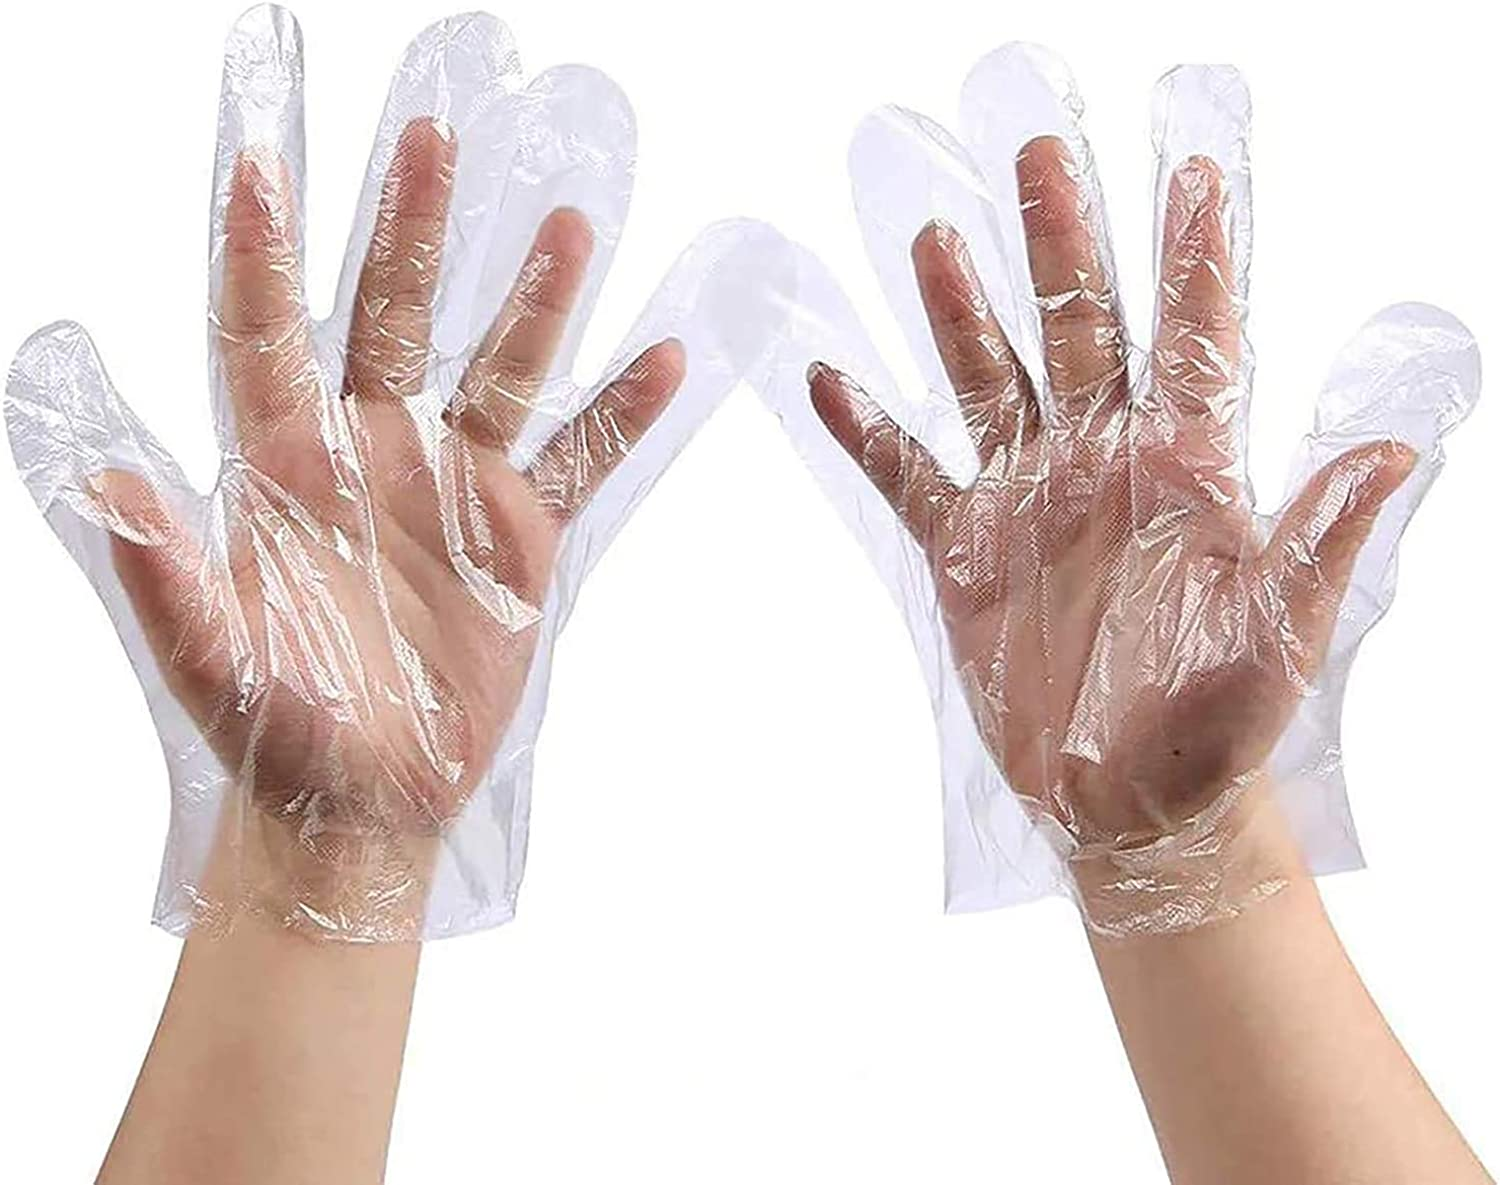 100 Pcs Disposable Latex Free Polyethylene Plastic Gloves, Food Handling for Cleaning, Cooking (Adult Size)